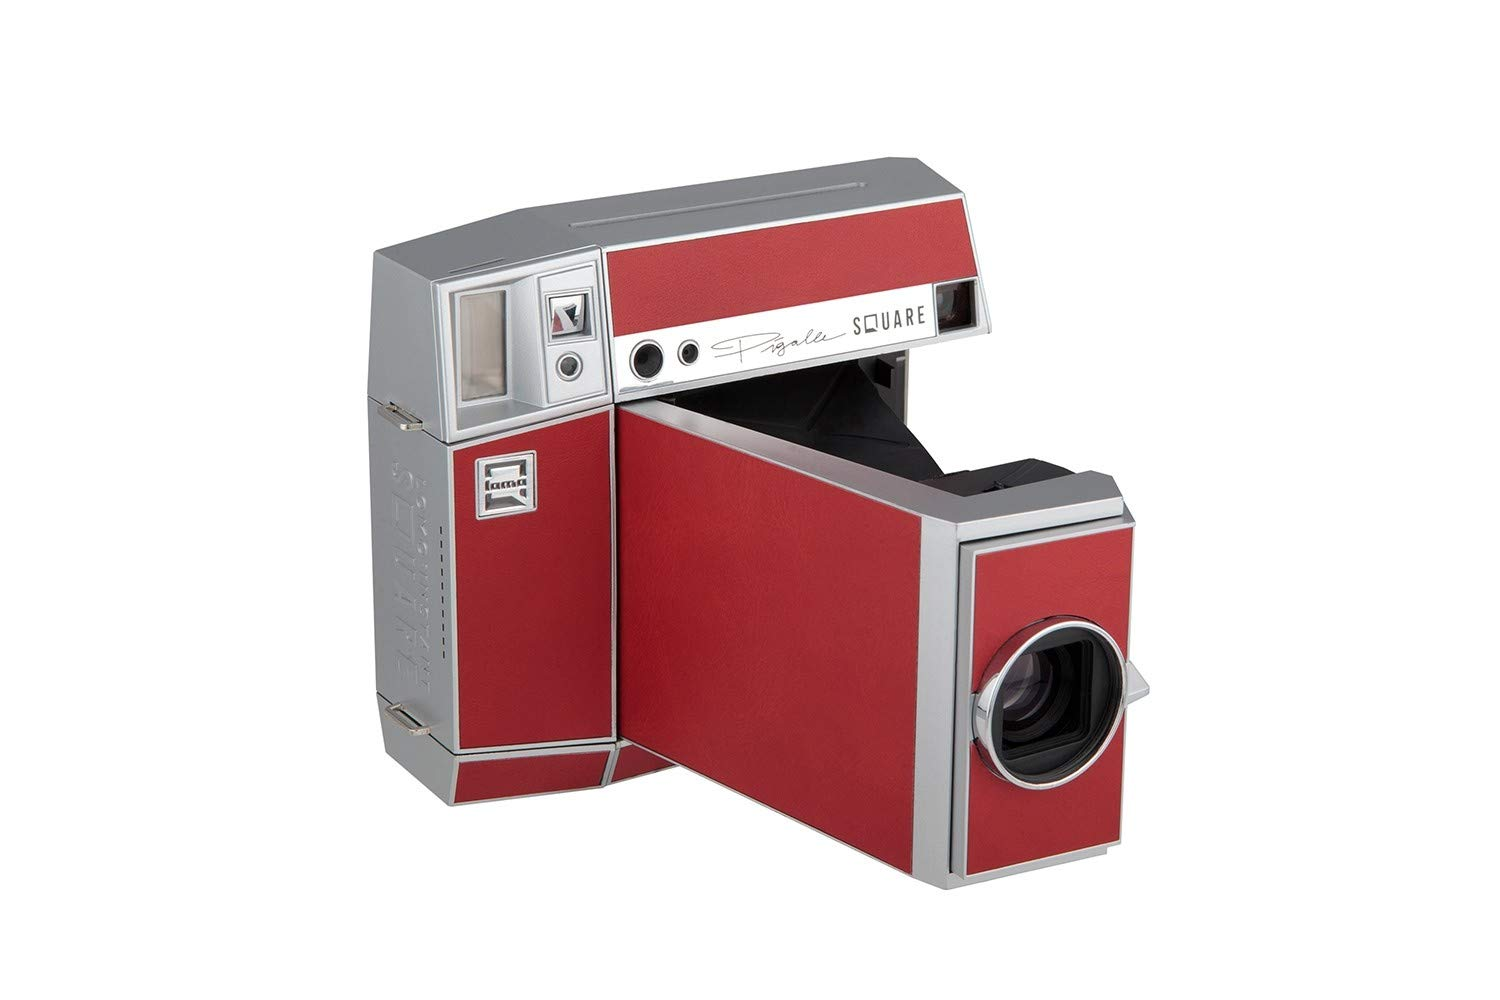 Lomography Lomo'Instant Square Glass Combo Pigalle - Instant Camera by Lomography (Image #4)